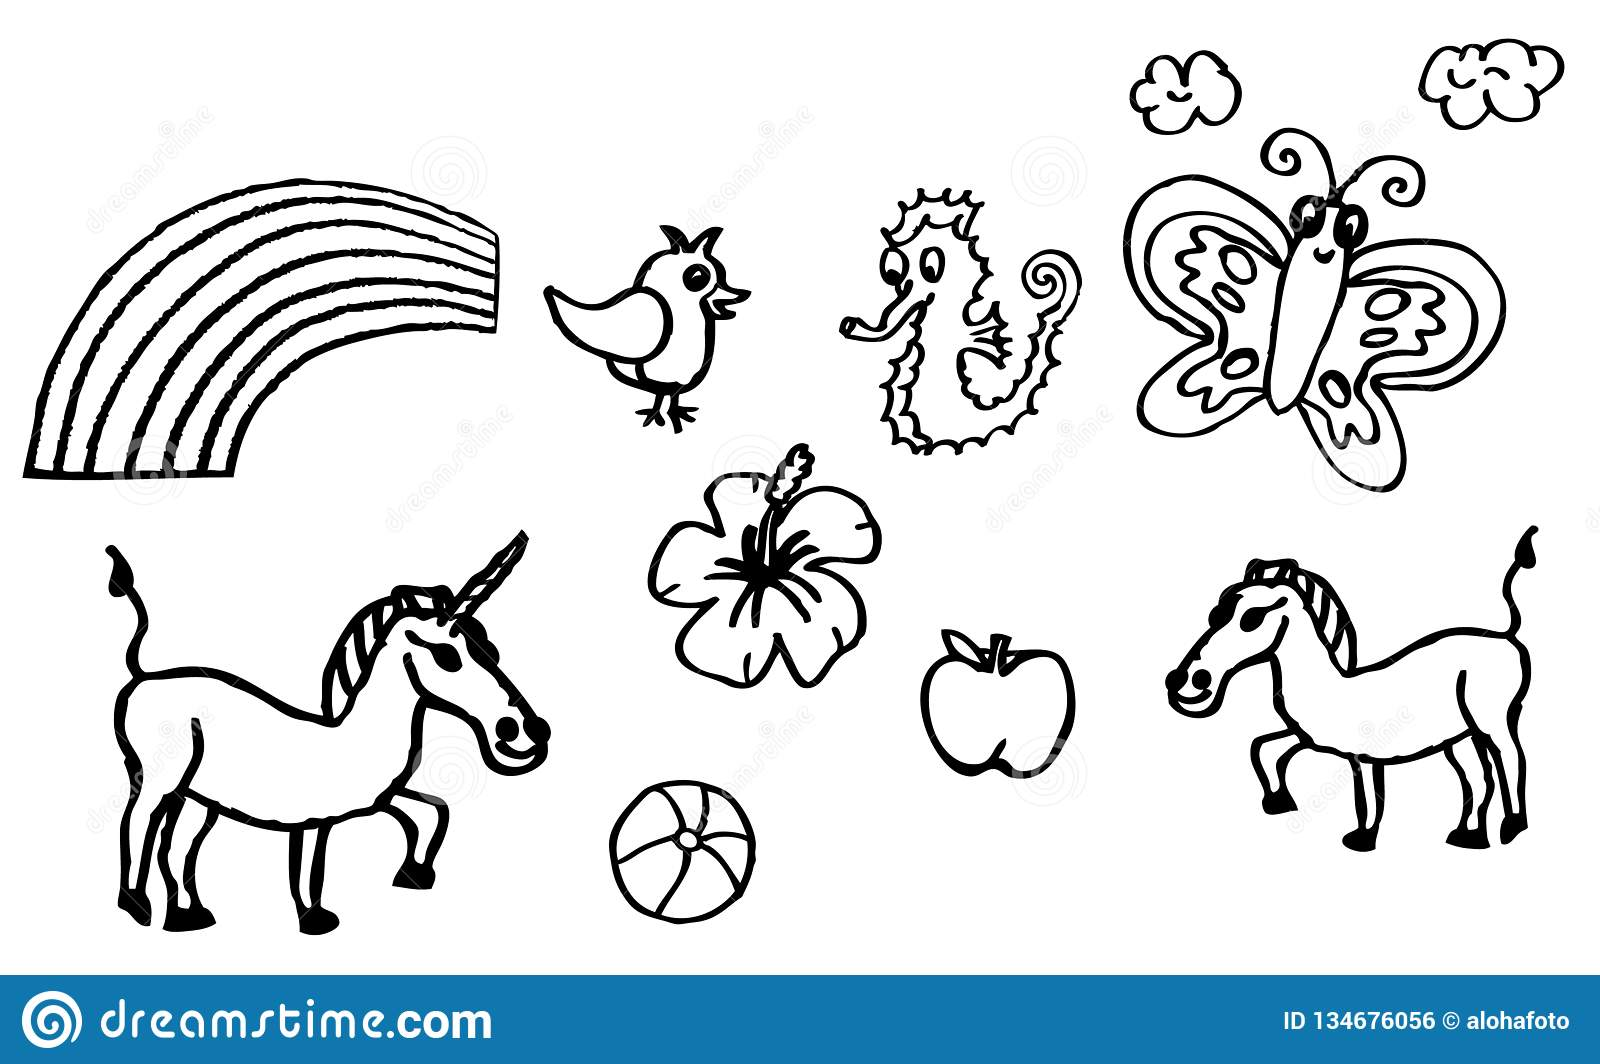 Coloring Book - Drawings About Hobbies With An Unicorn And ...